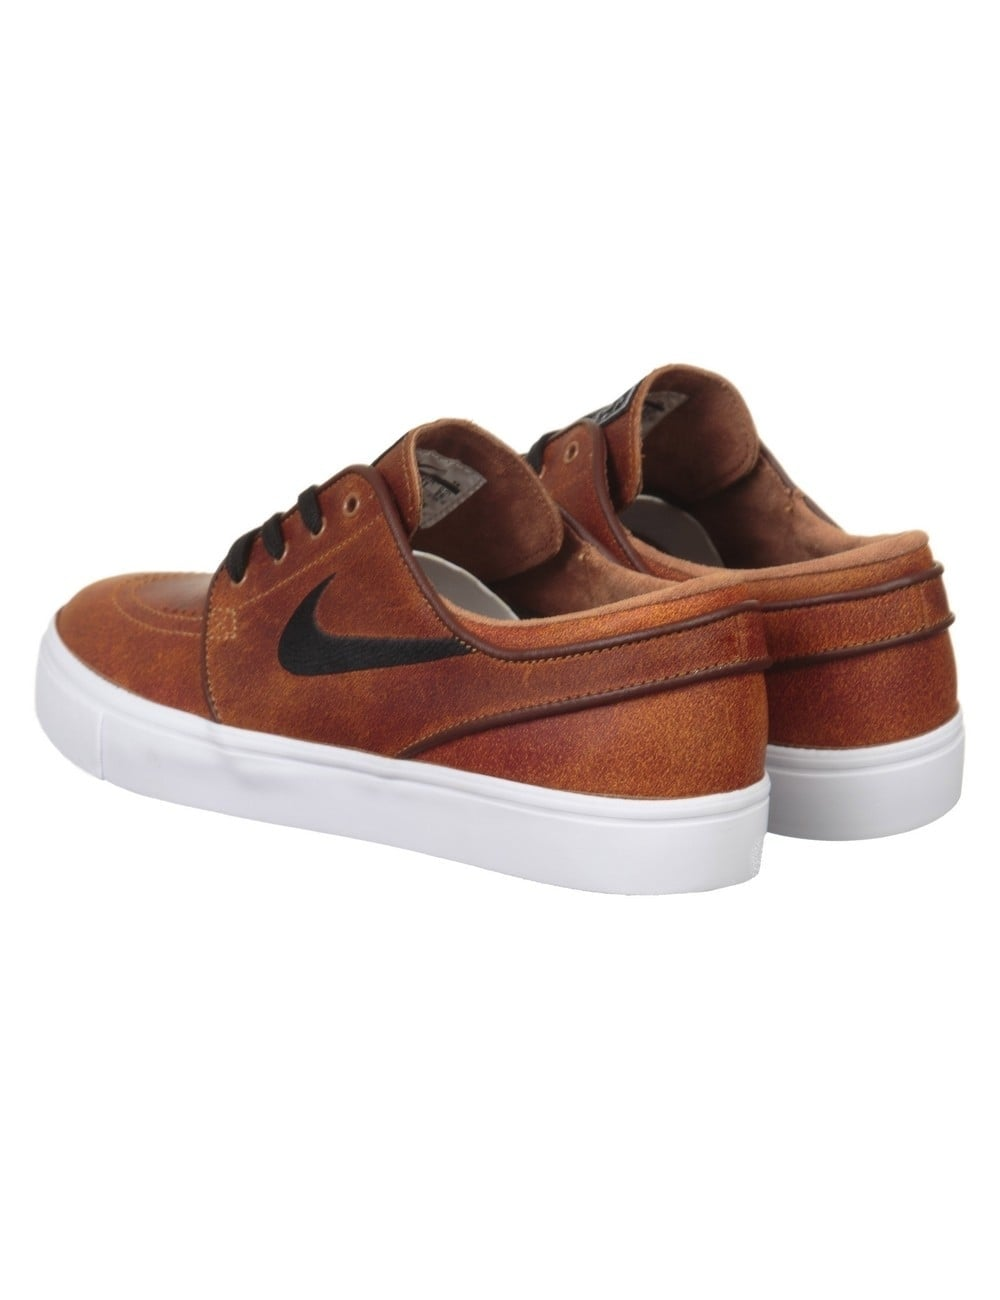 sports shoes 04caa ba064 Stefan Janoski Elite Shoes - Ale Brown/Black